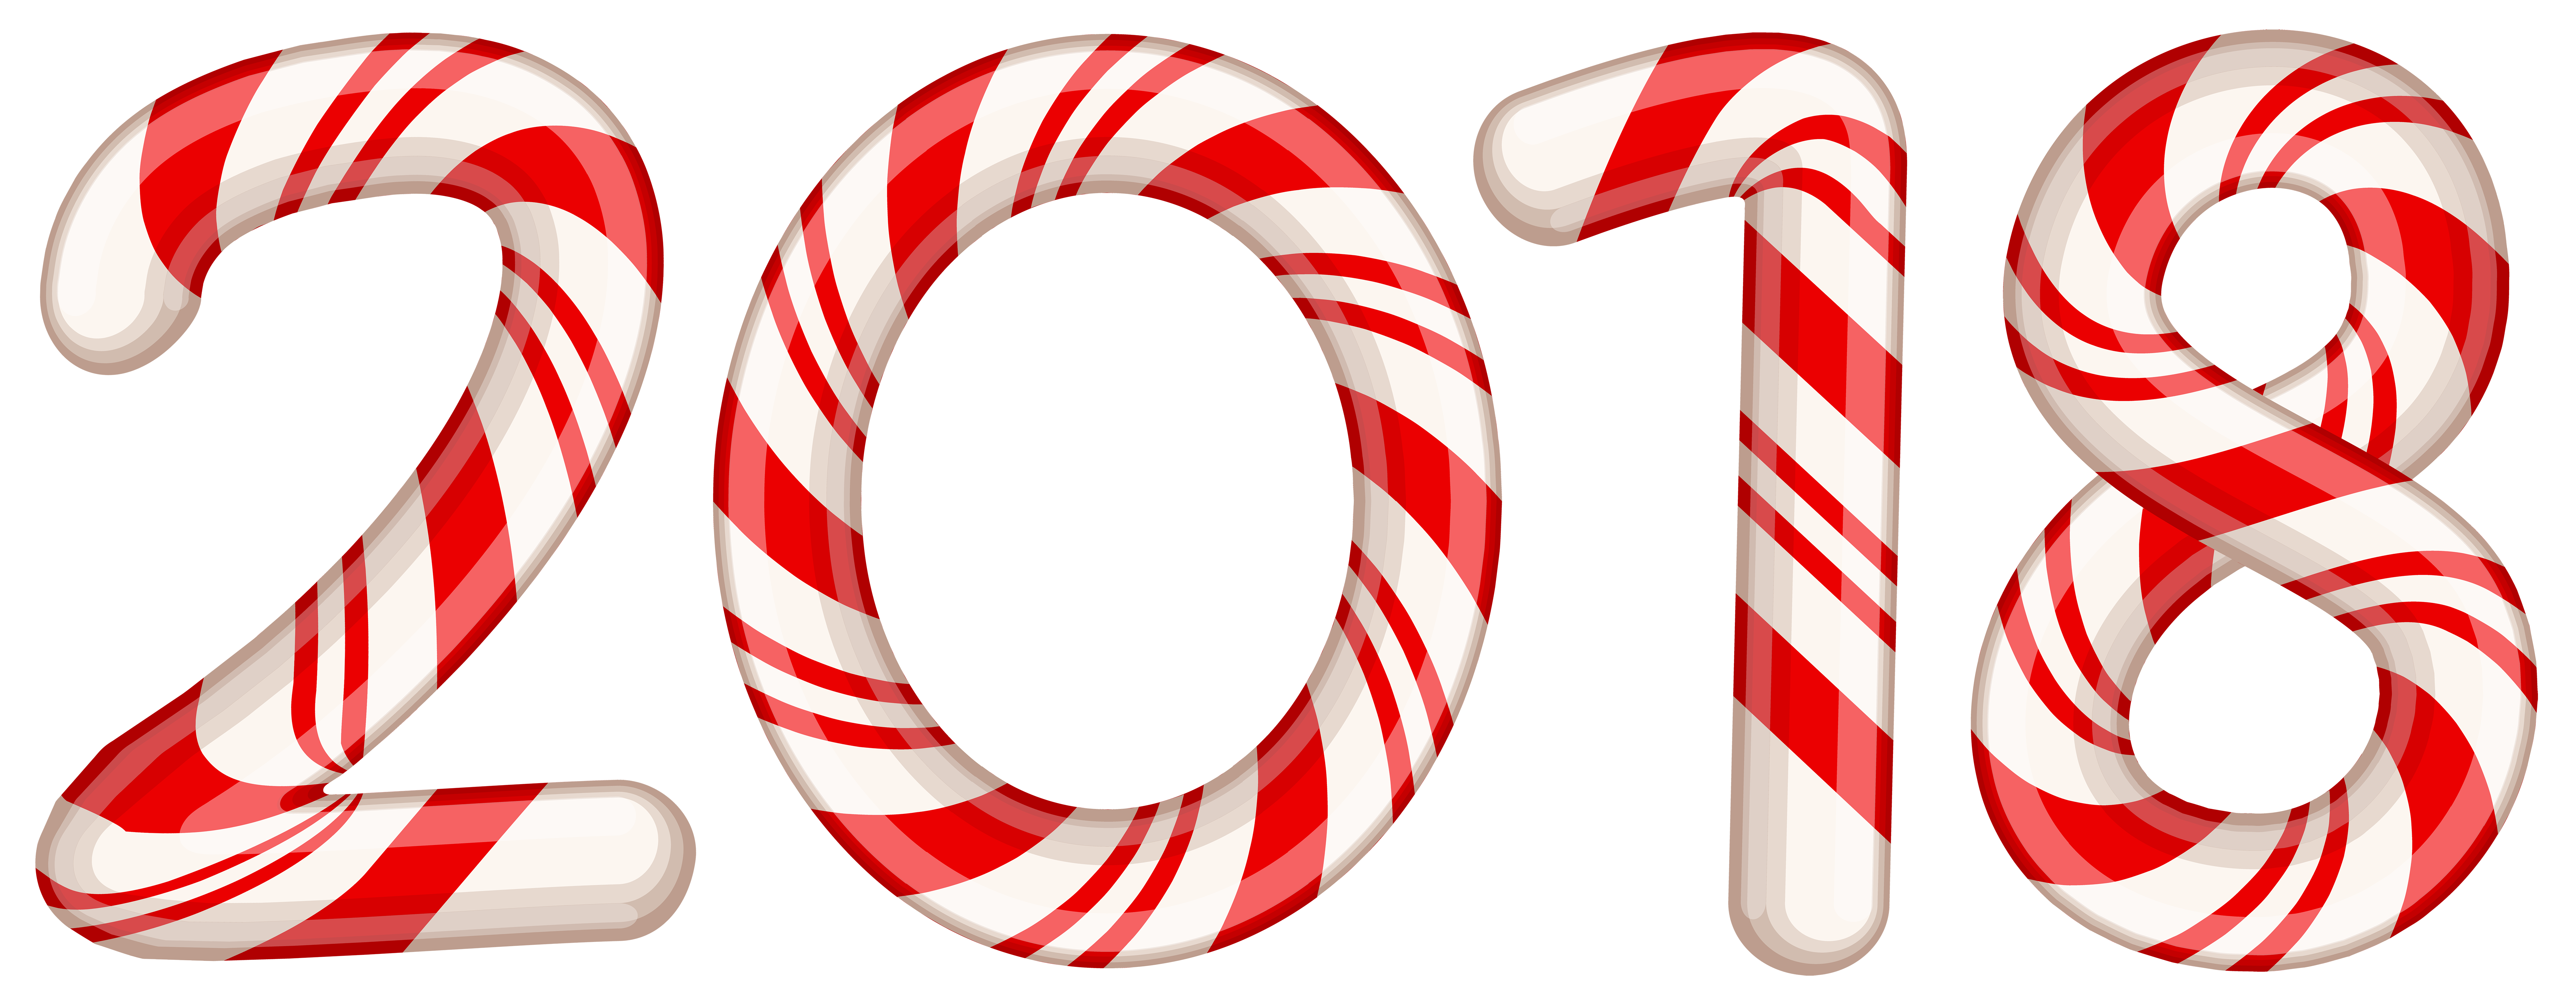 candy cane red. 2018 clipart transparent background